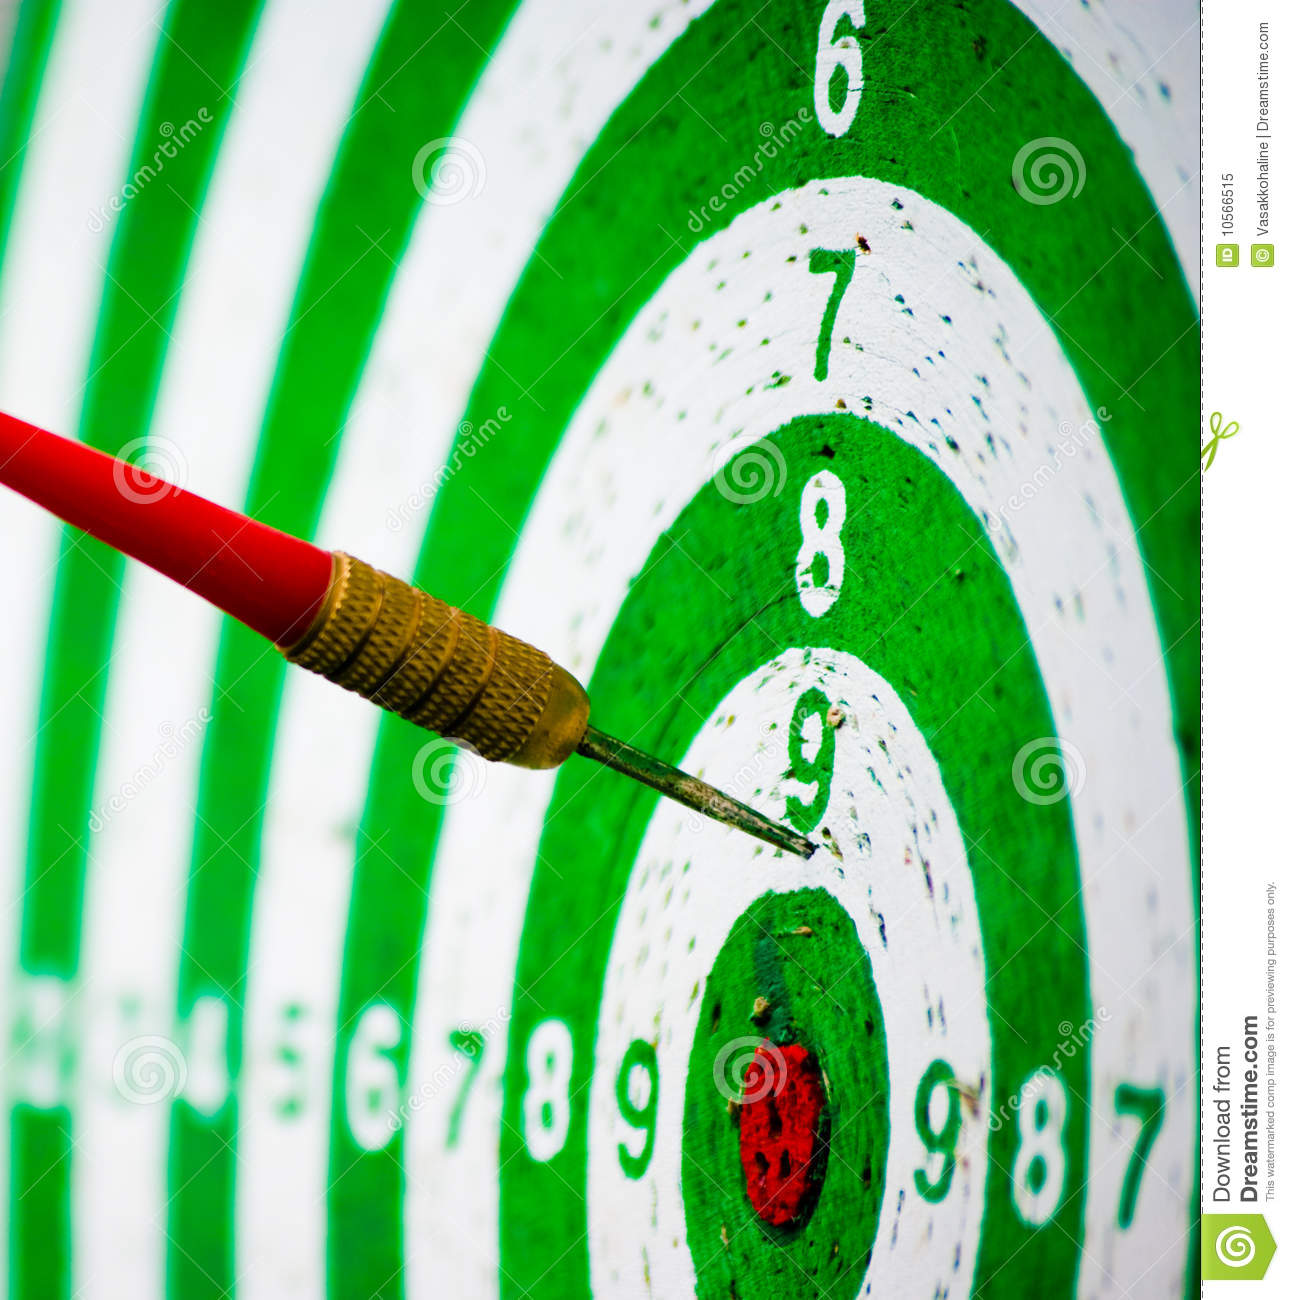 Missed Target Royalty Free Stock Photo Image 10566515